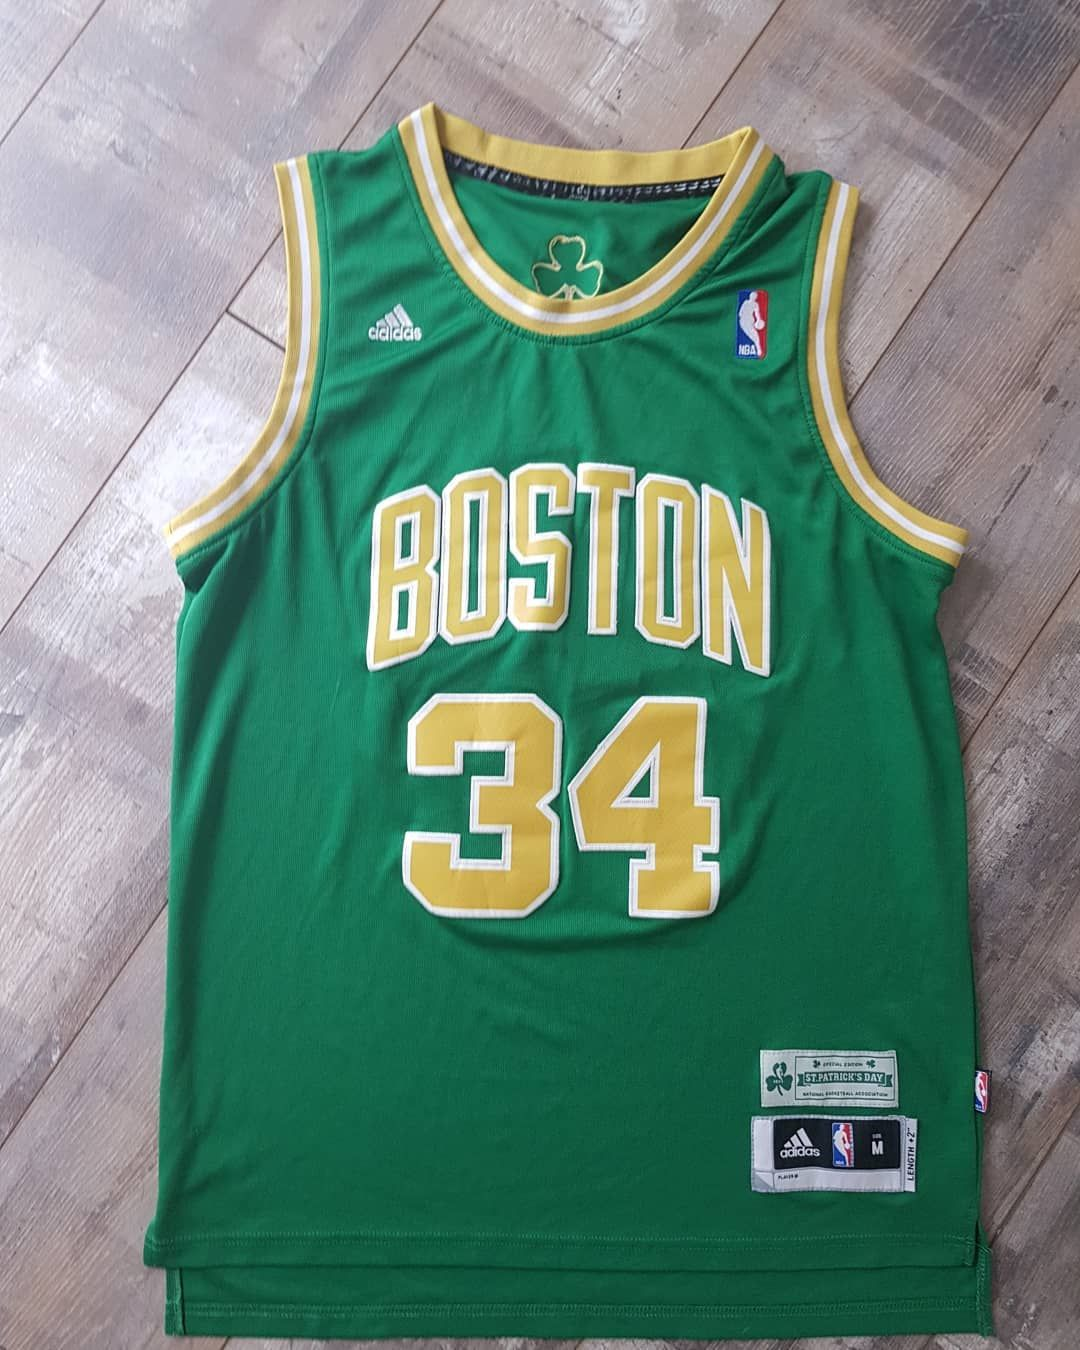 4aa229afd Paul Pierce Boston Celtics Jersey Size Medium. 35 shipping. OPEN TO OFFERS  . . This Special Edition Adidas St Patrick s Day jersey is a really nice  piece ...